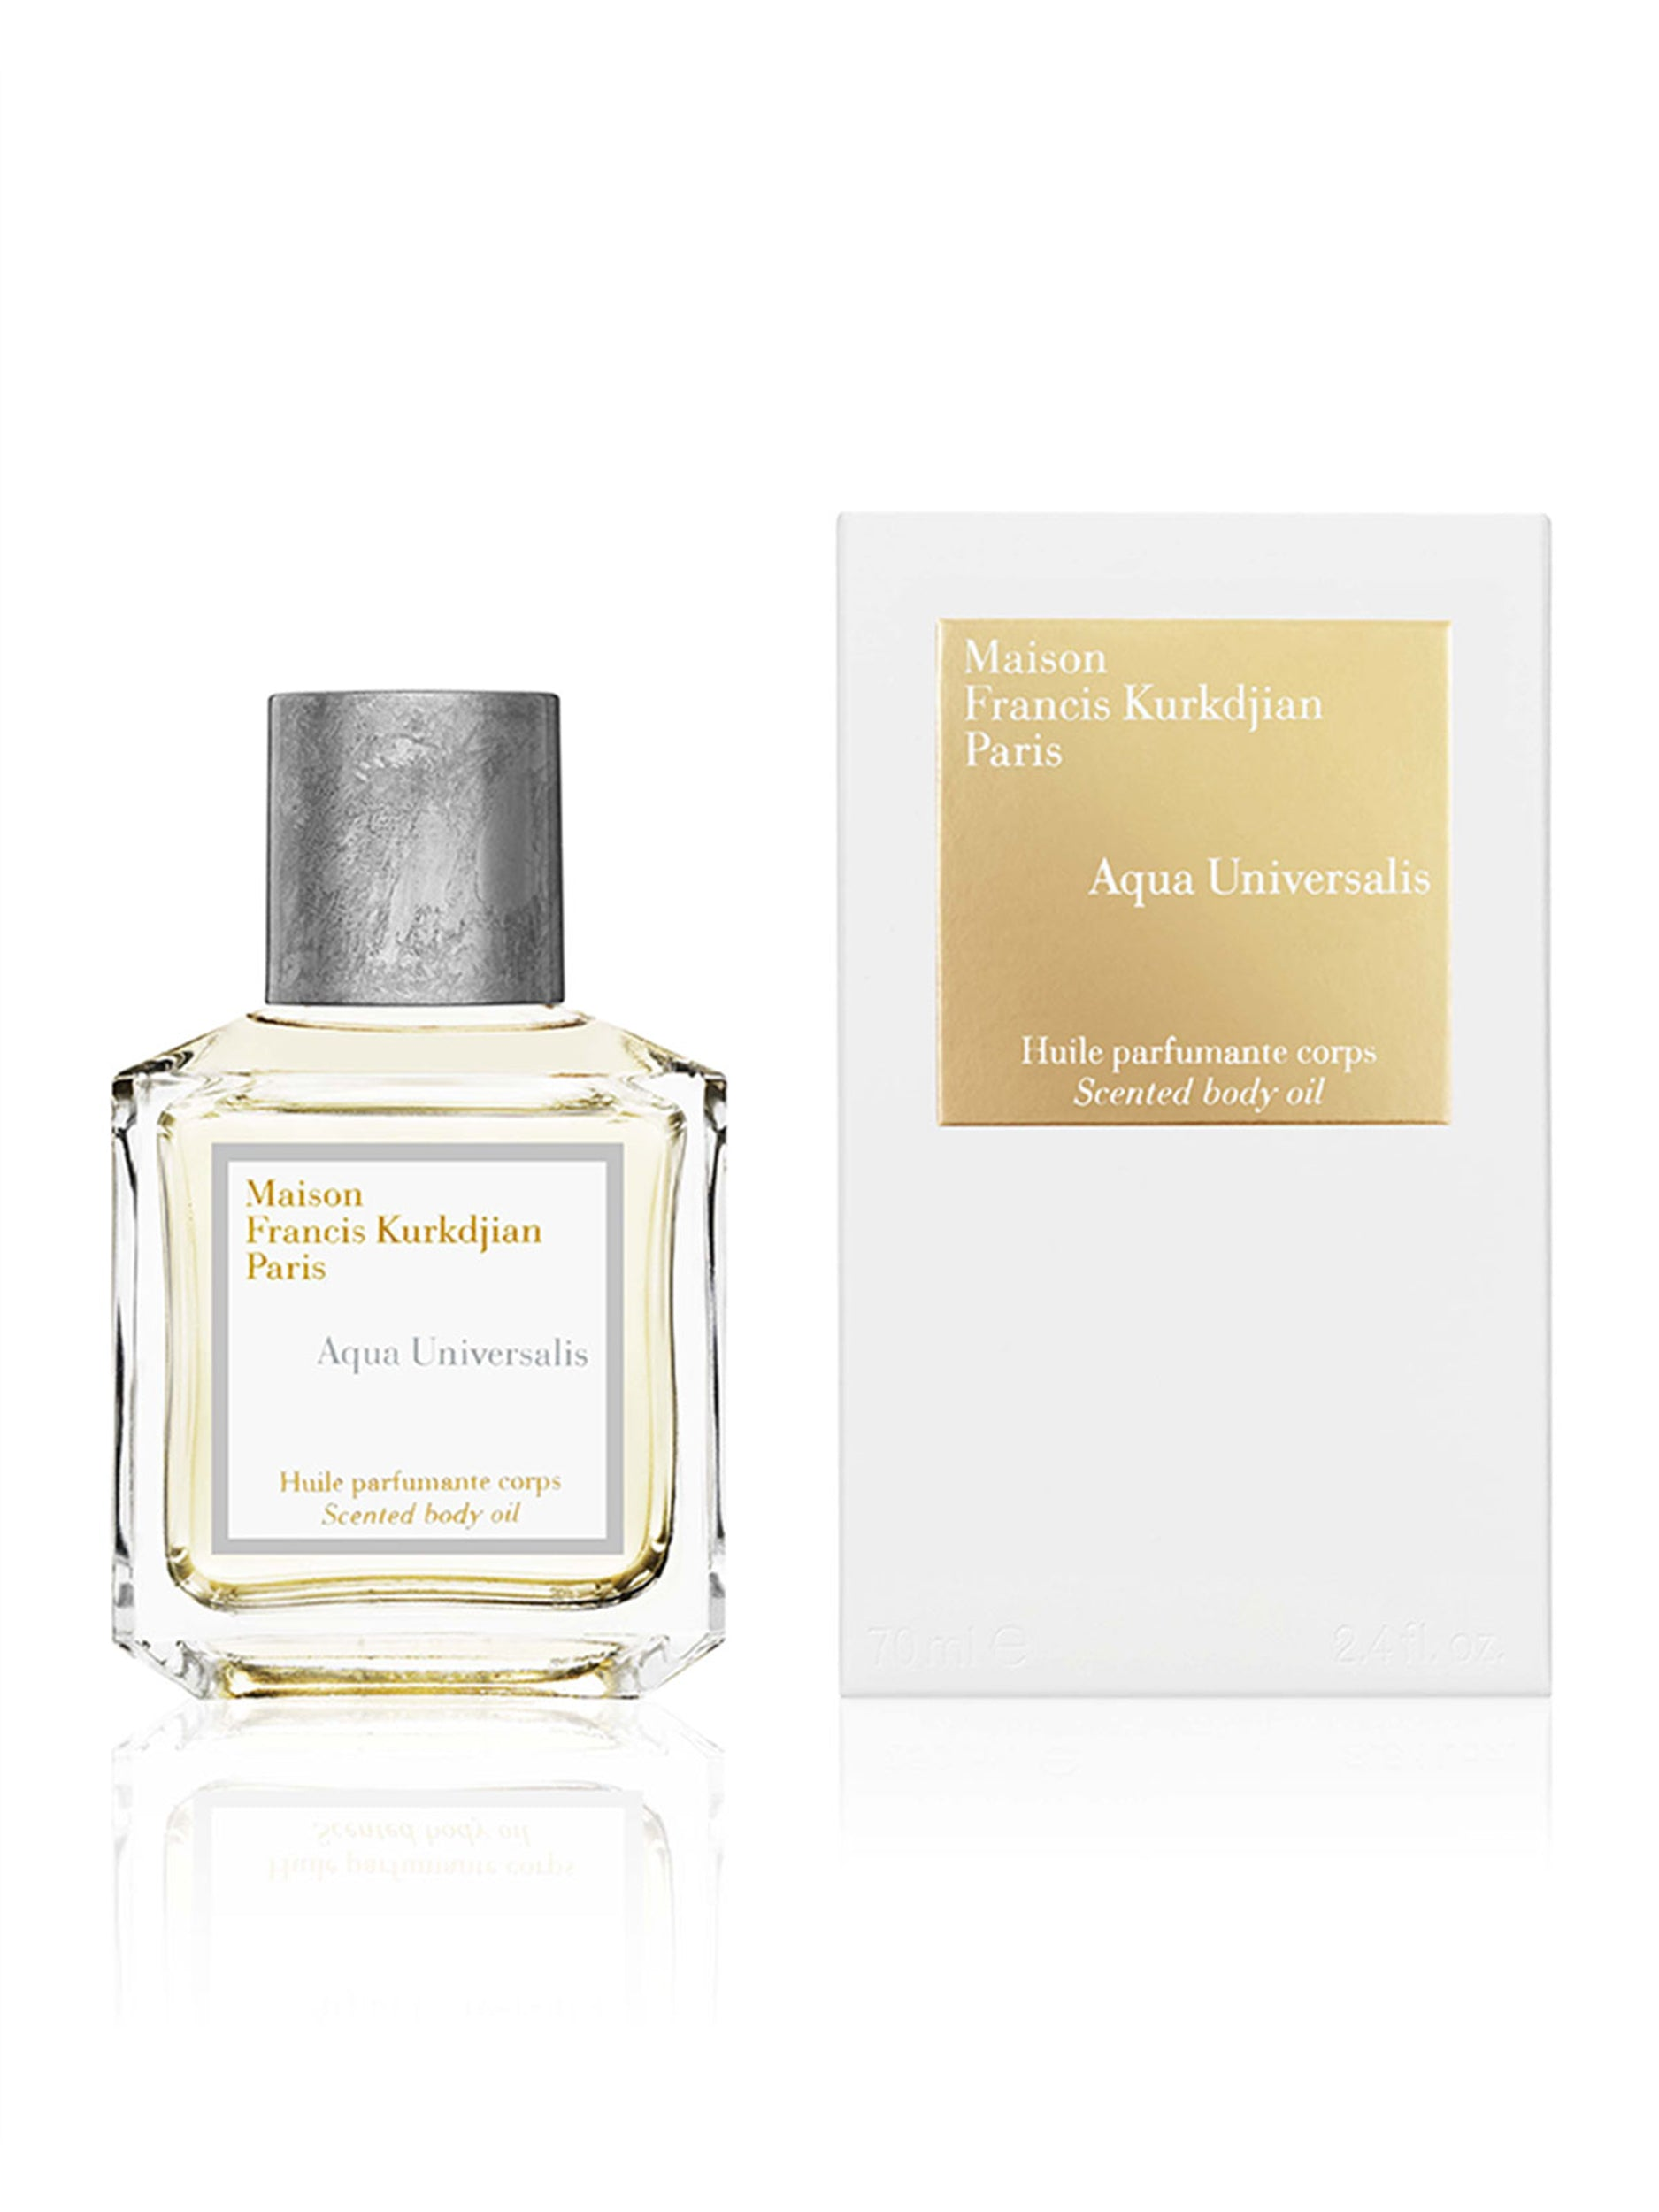 Aqua Universalis Scented Body Oil